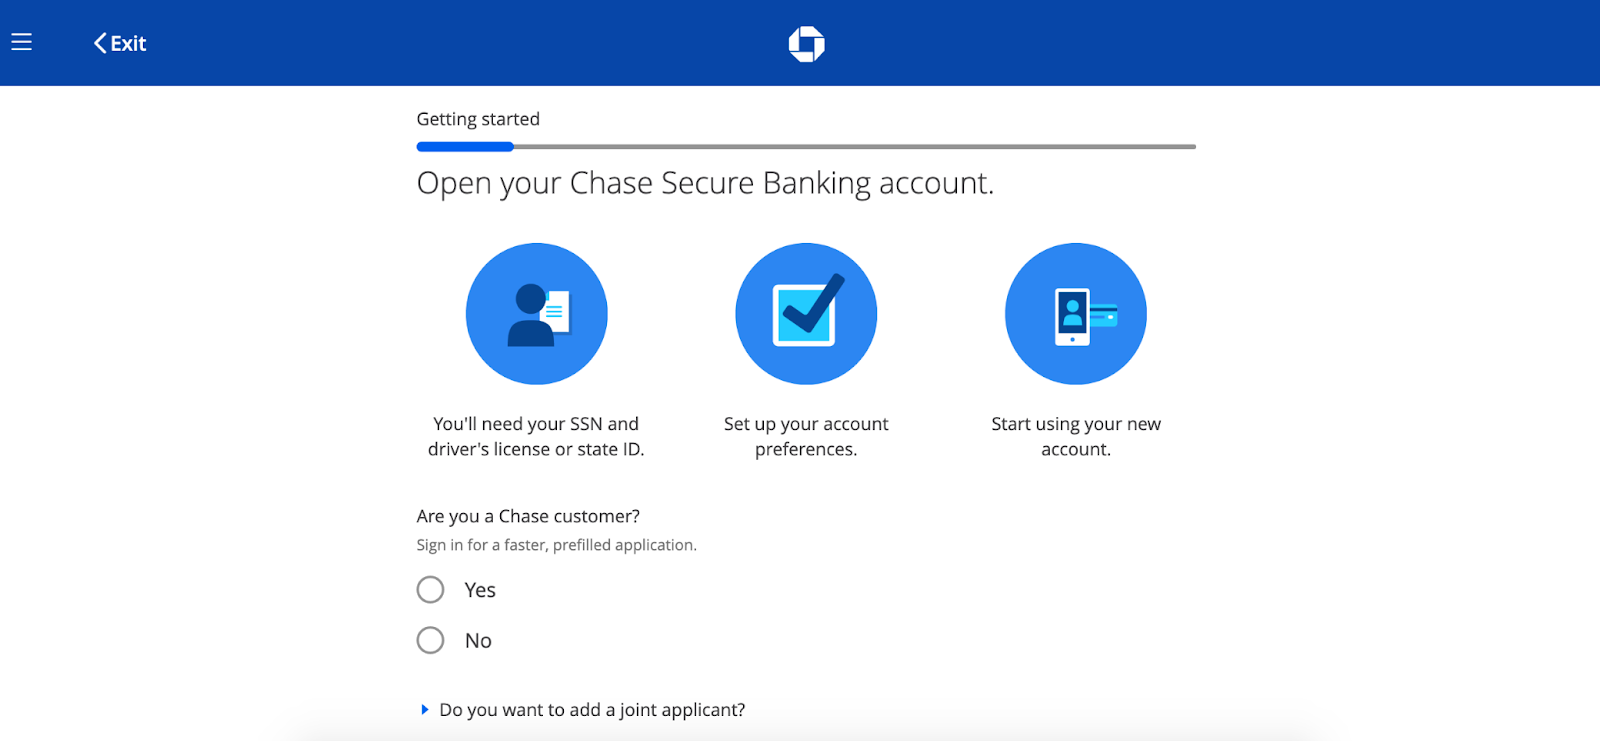 Chase Secure Banking Review: Corporate Banking with Online Convenience - Open your account